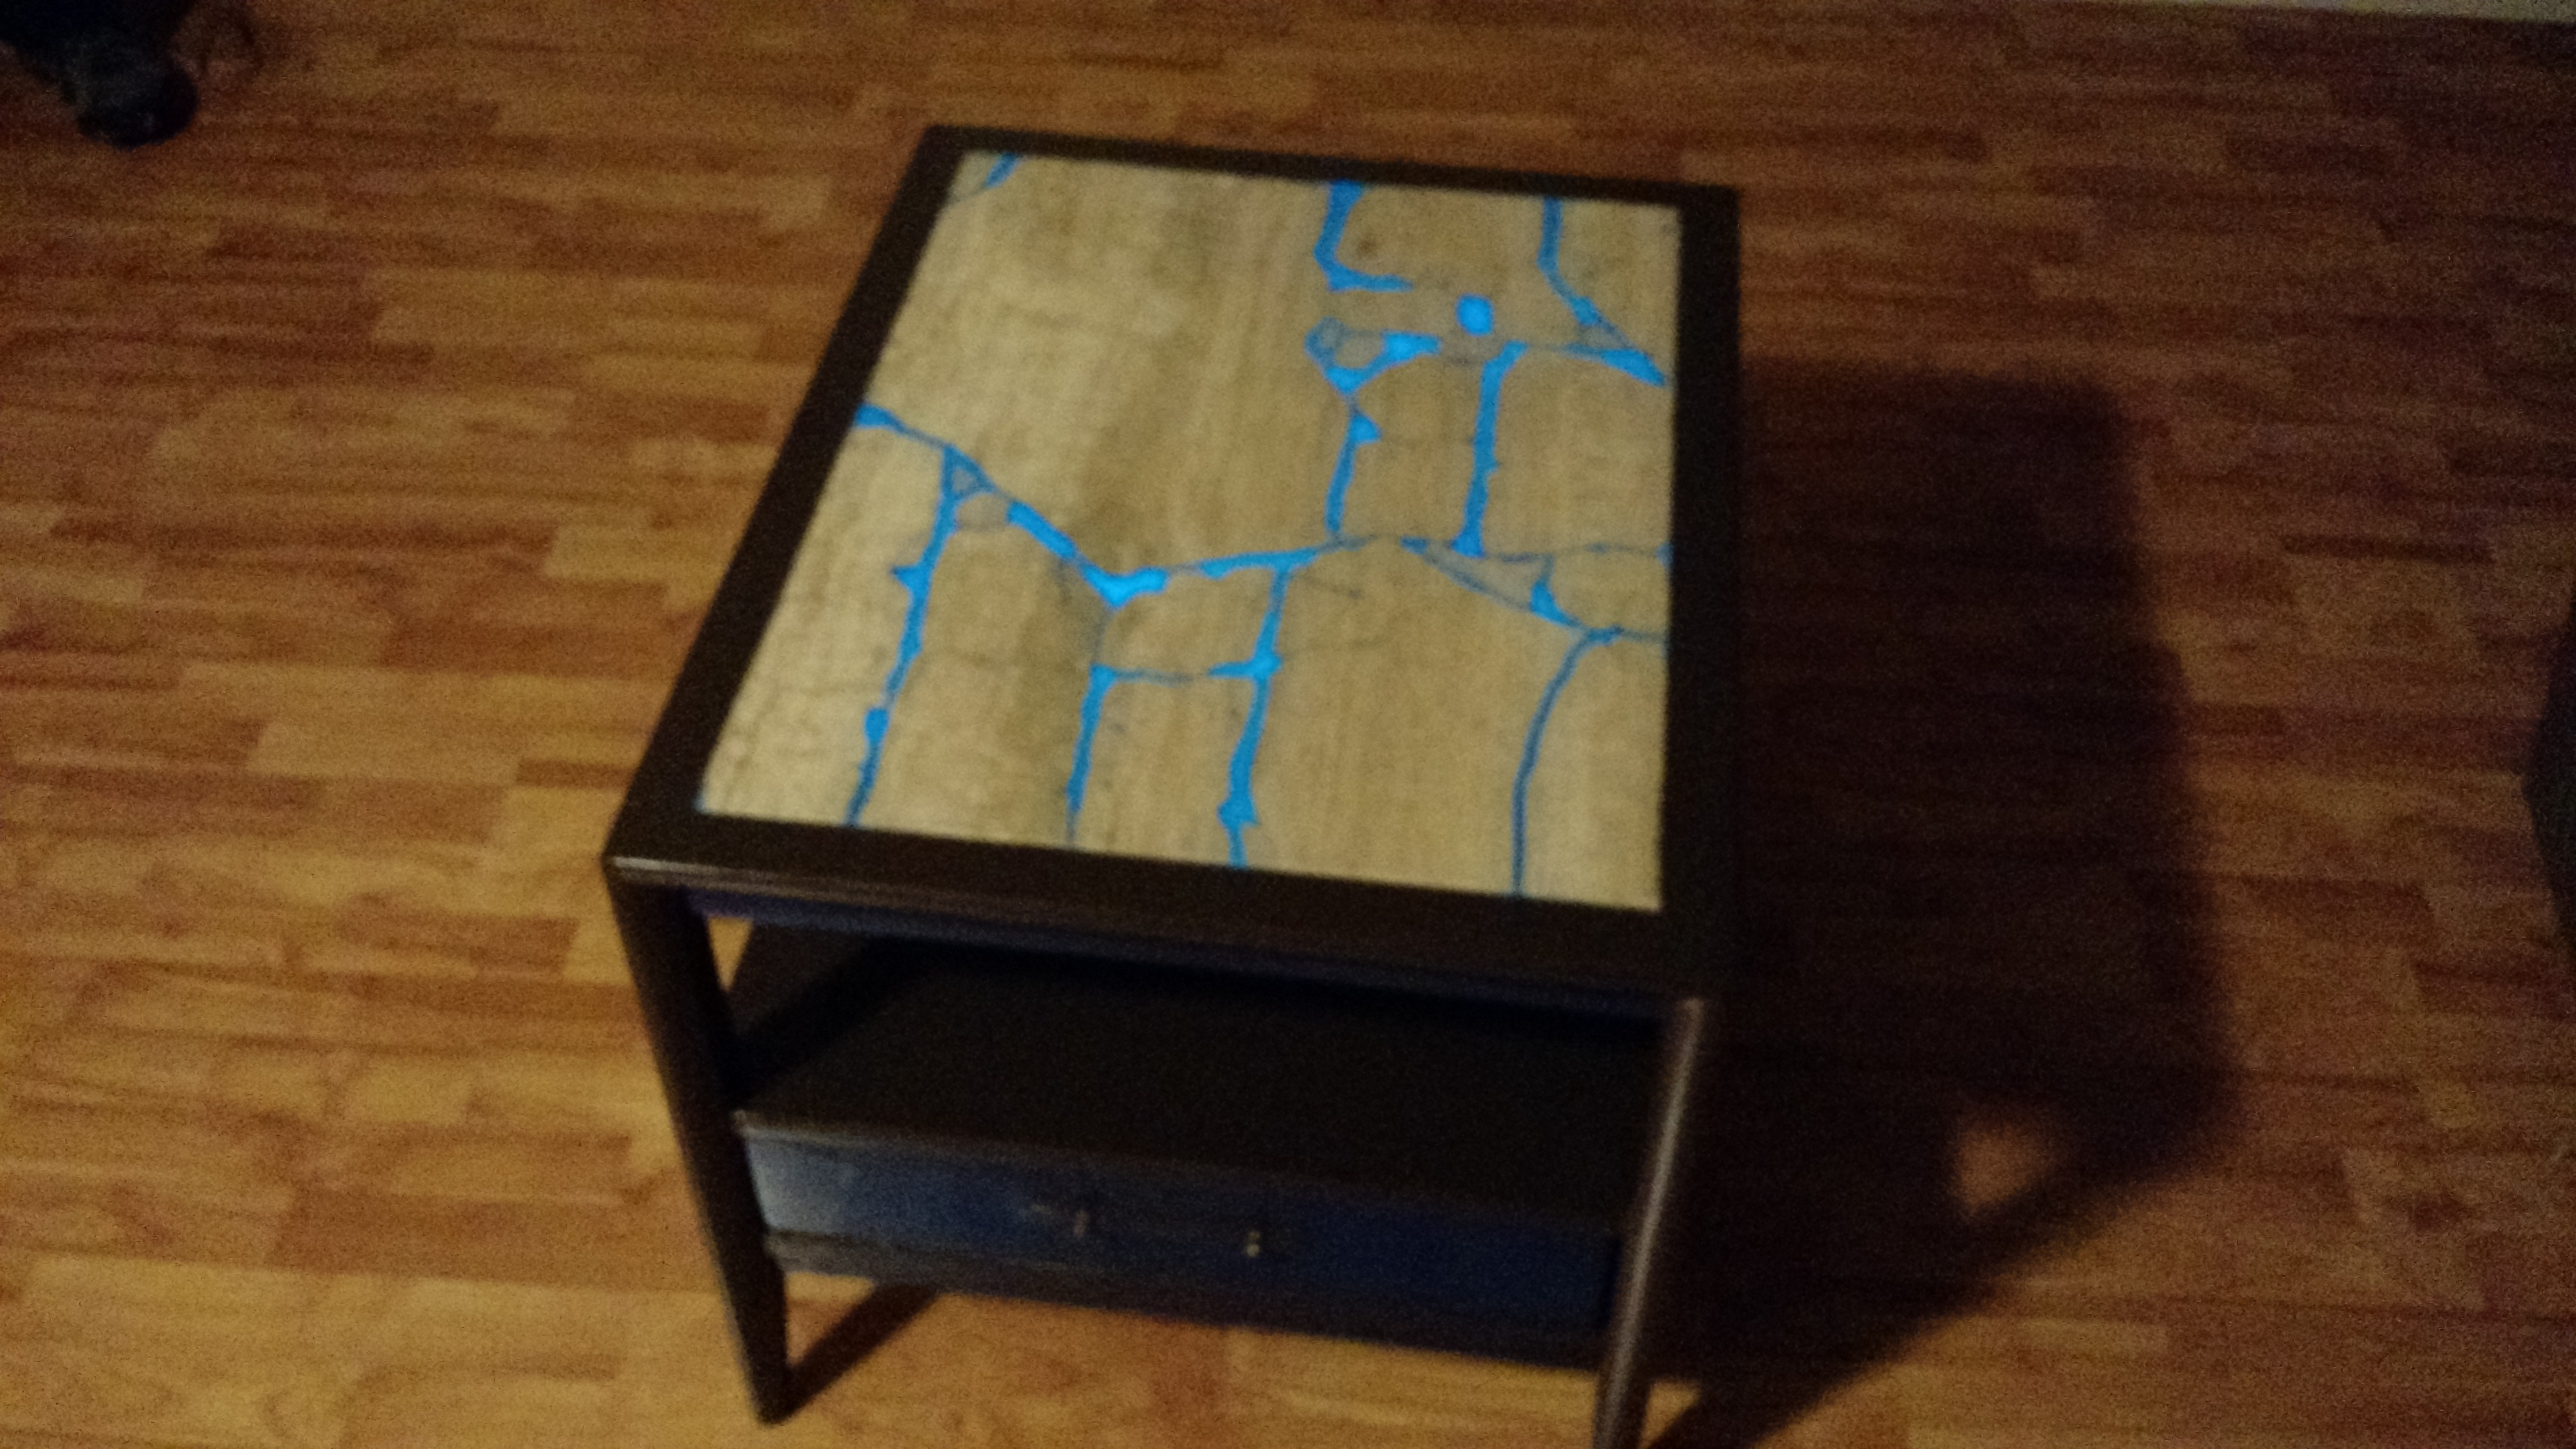 Shabby-Geek Goodwill Table Gets Glowing Makeover